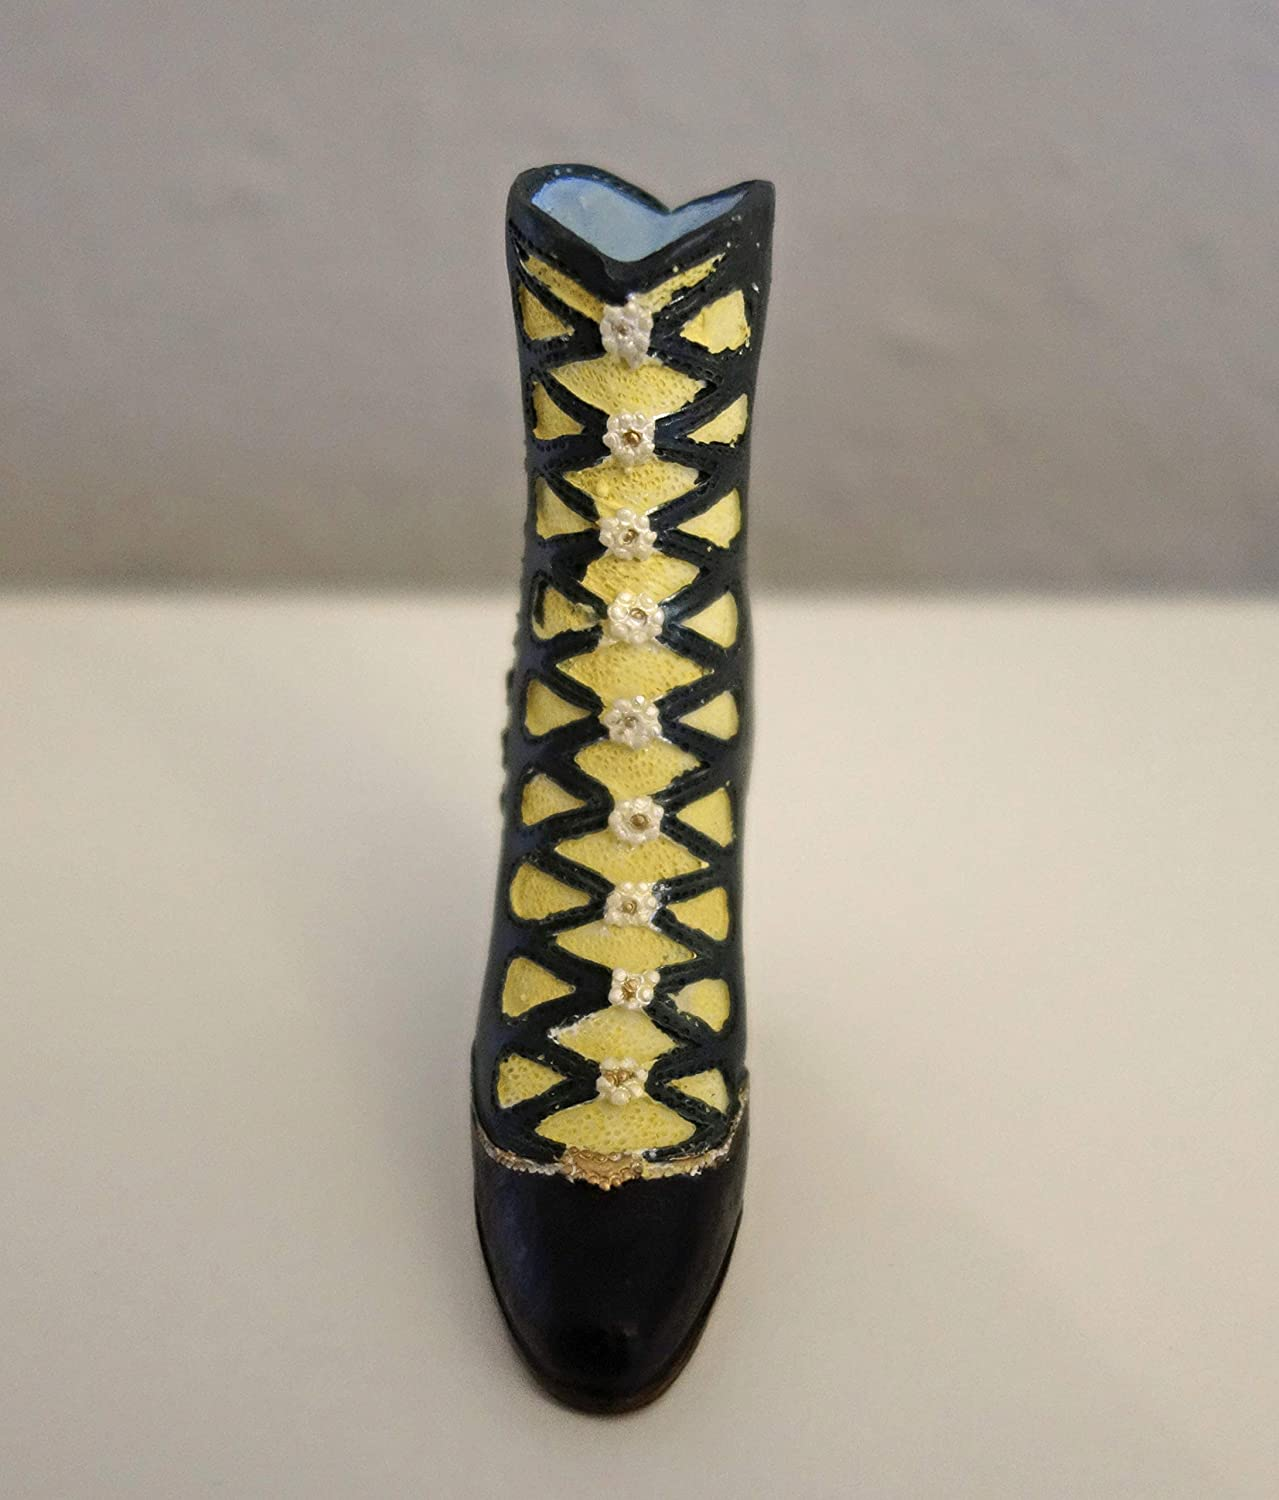 Collectible vintage style decorative miniature boot ornament